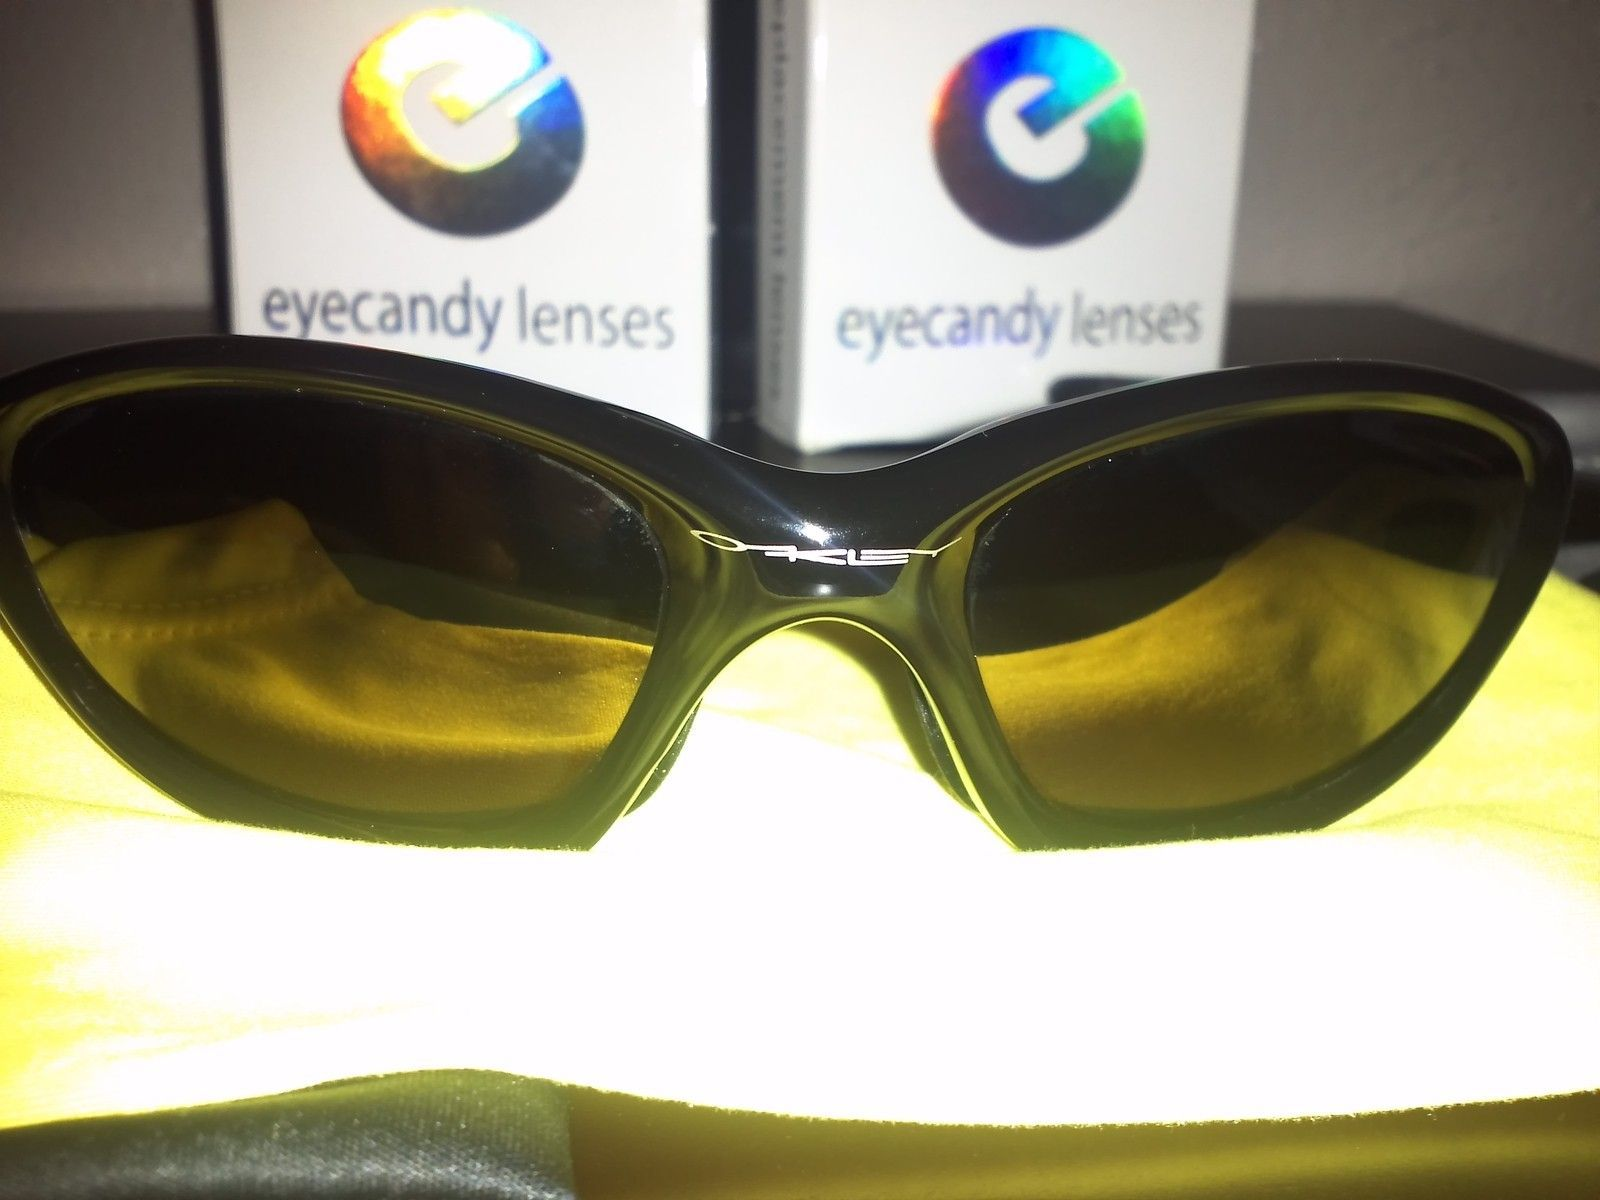 EyeKon Lenses For Oakley XX (Vintage) Purchase And Review (Final Update 12-31-12) - lensfit.jpg